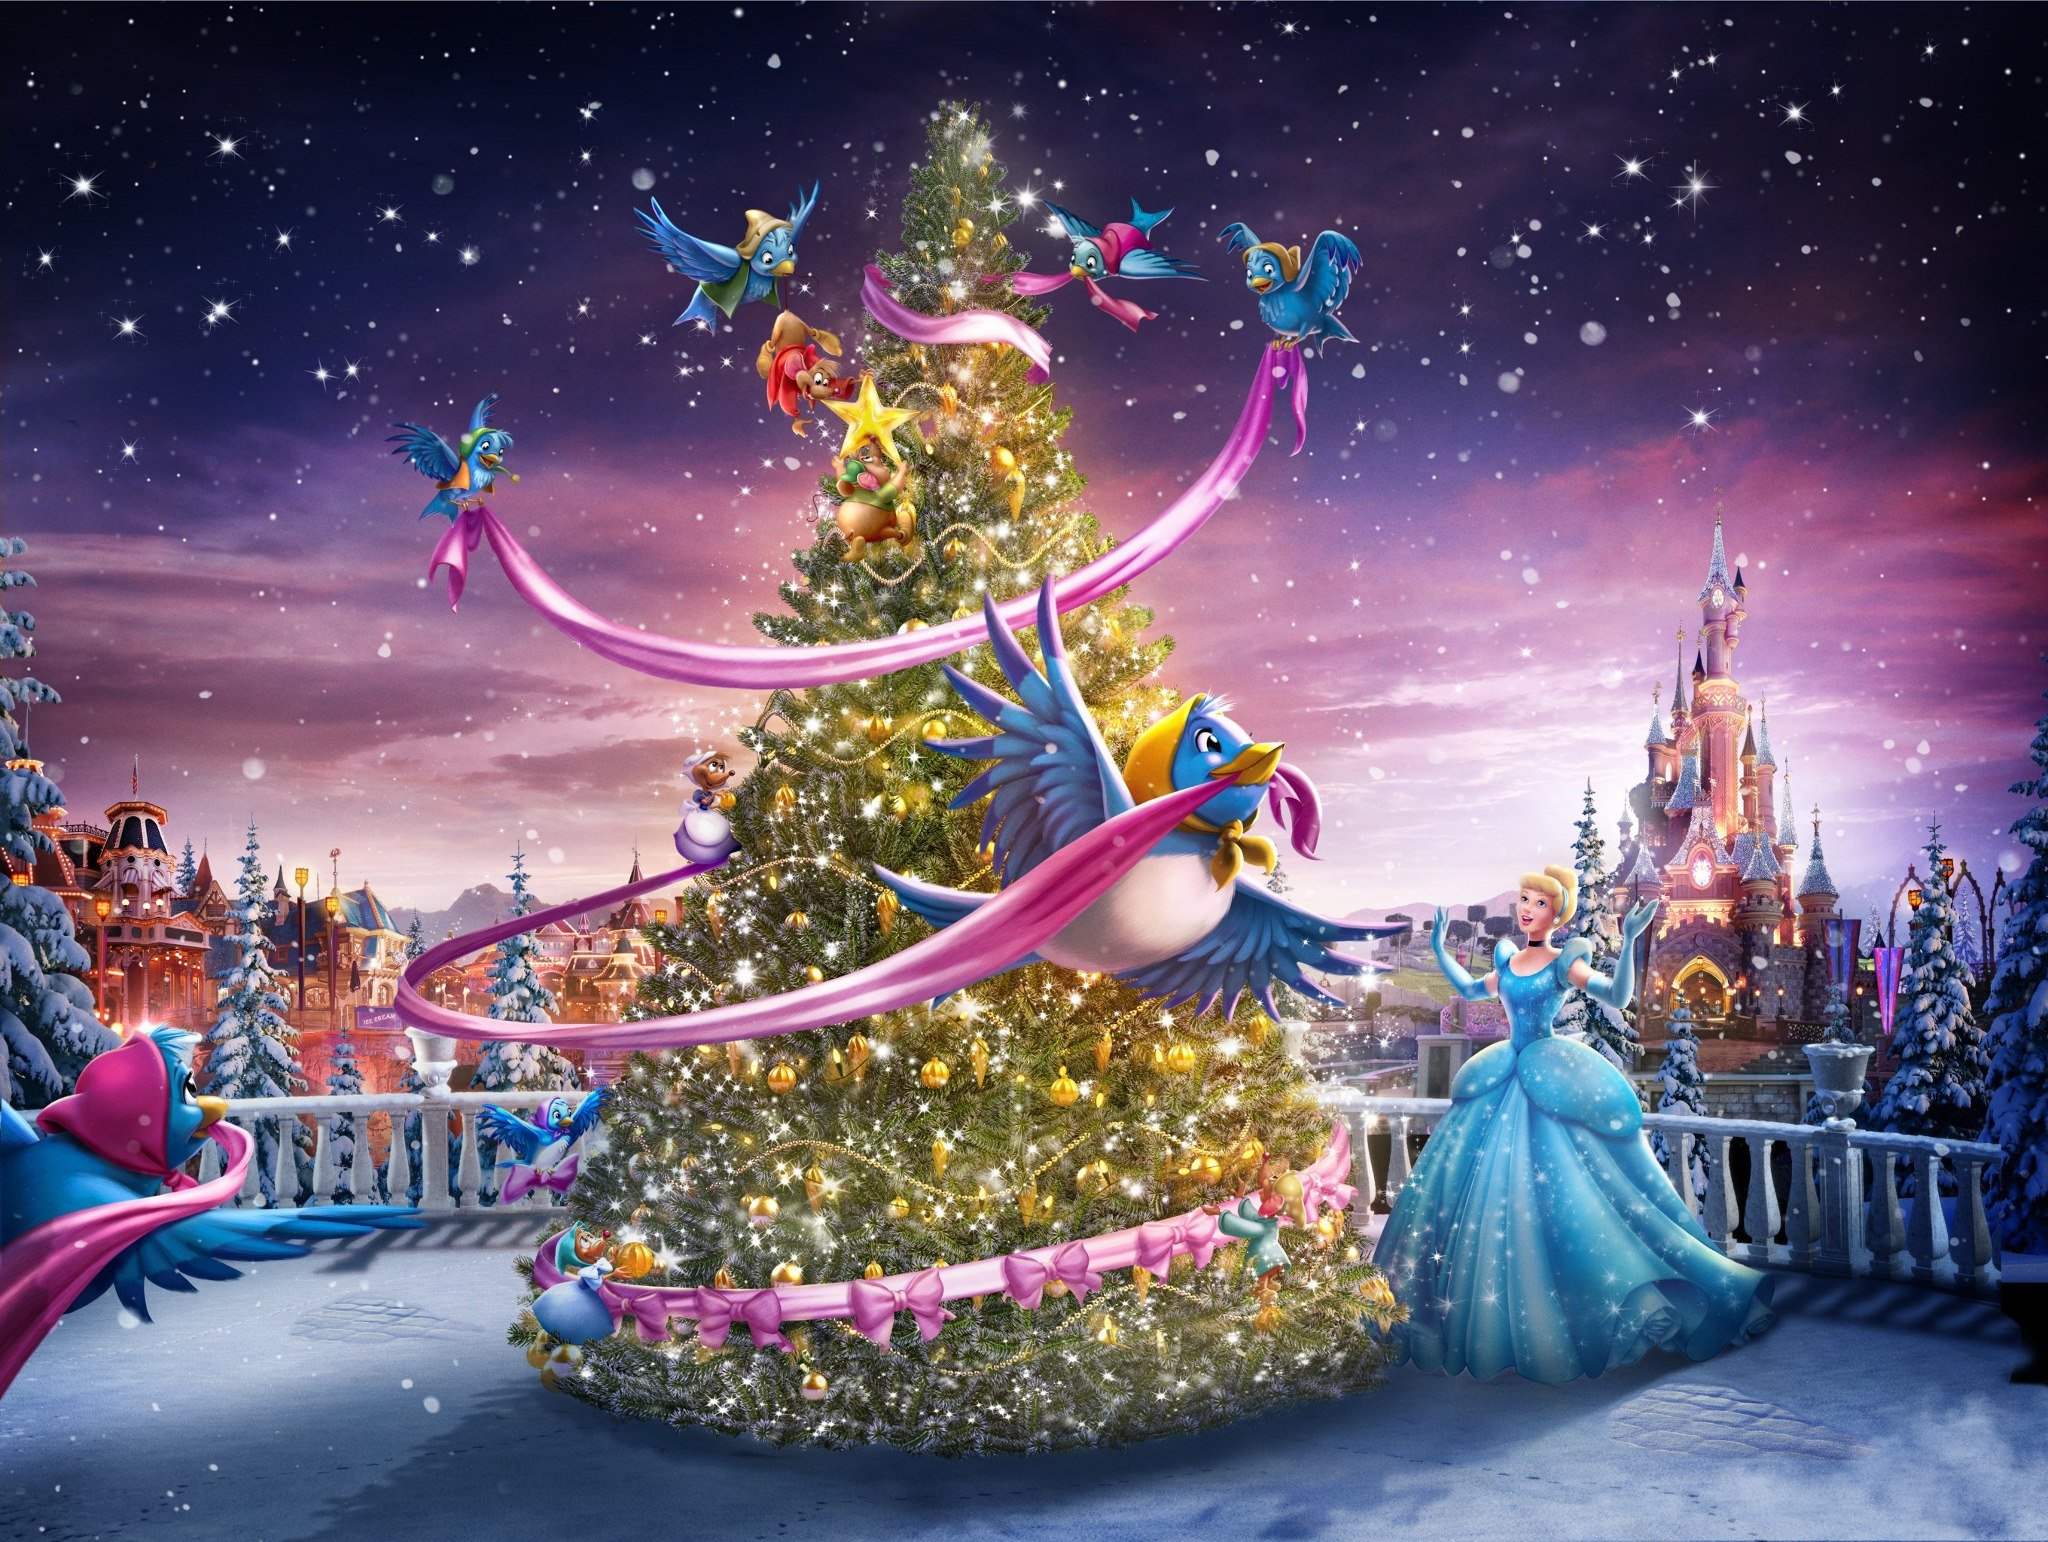 New commercials show disneyland paris is also for adults for Show a paris